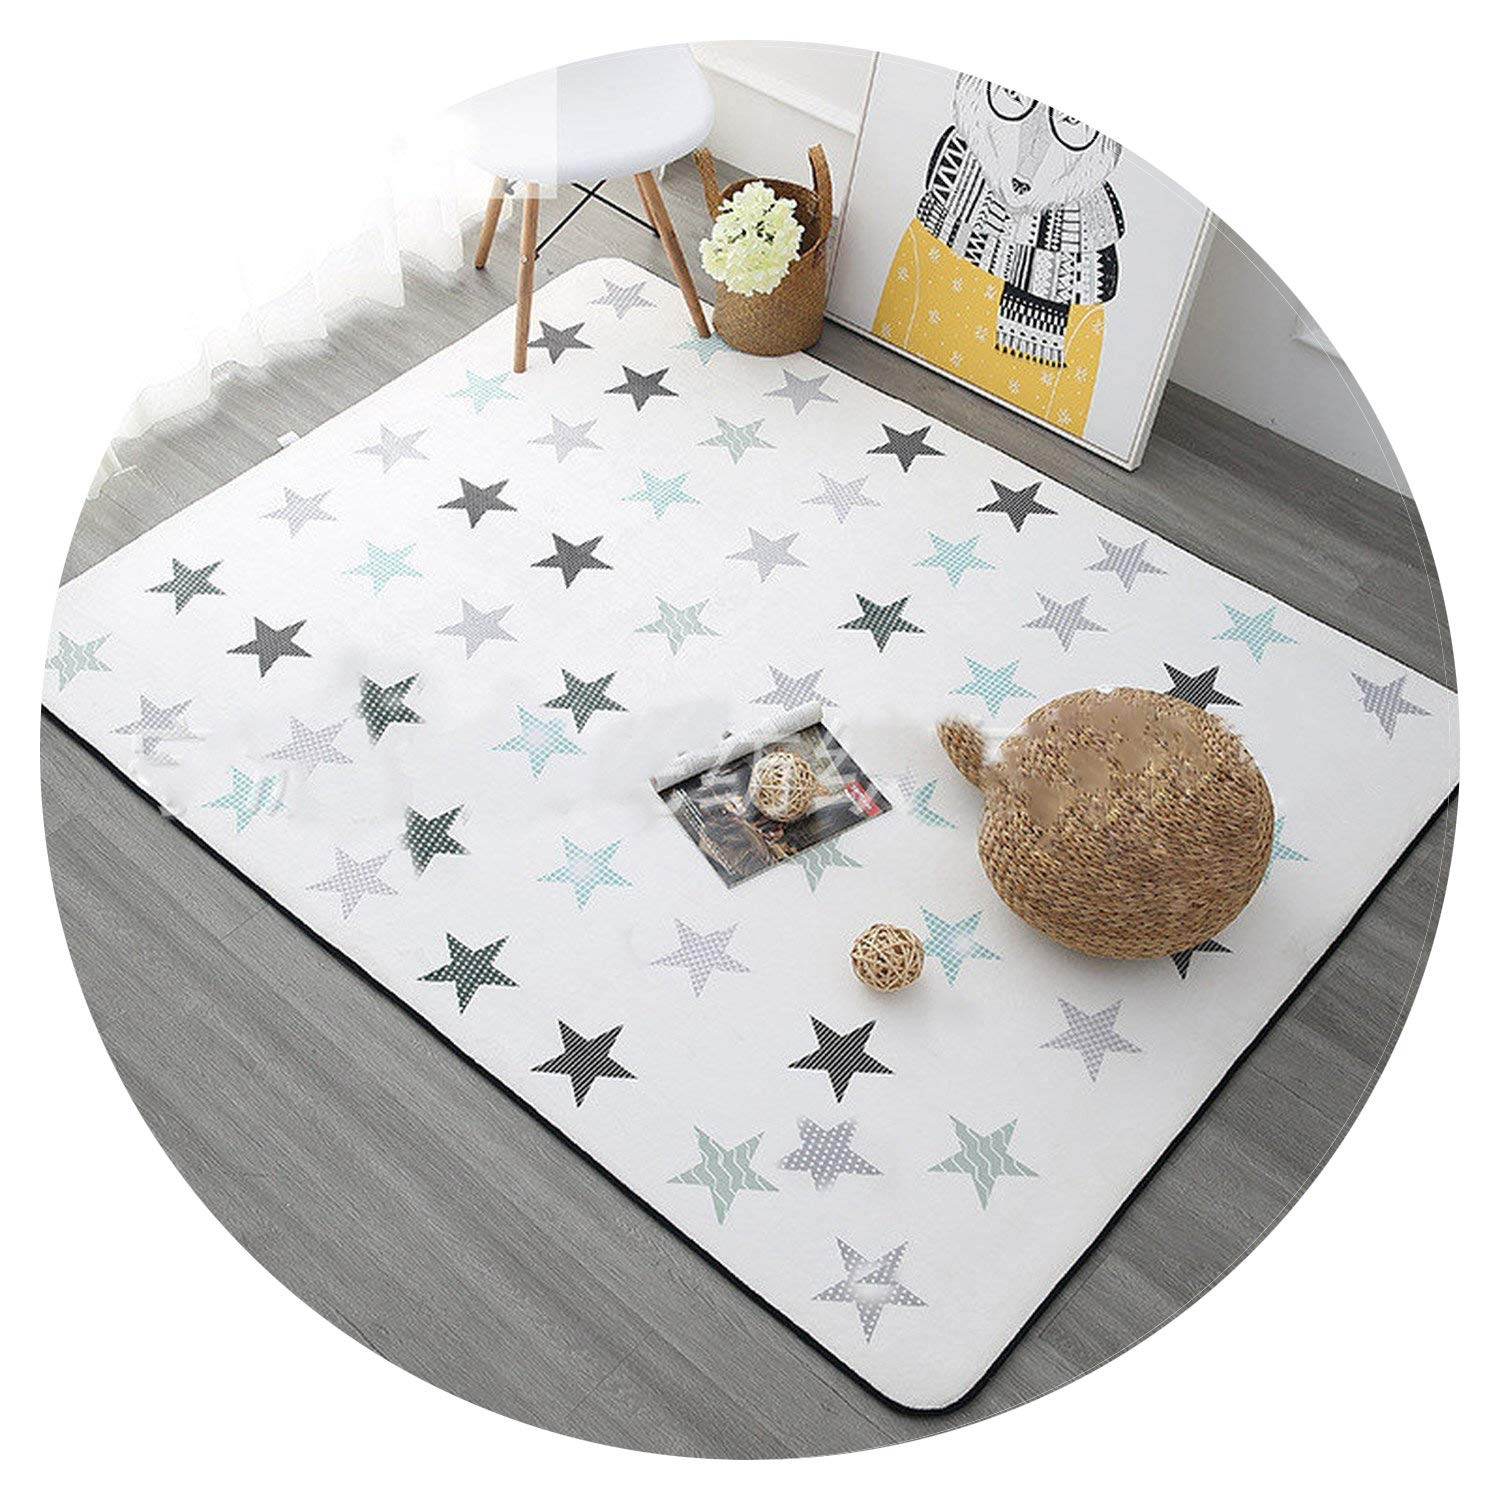 Star Printed Carpet Anti-Slip Floor Rug Bath Mat Soft Baby Playing Carpets for Living Room Indoor Bedroom 100 * 150cm,A,100X150CM